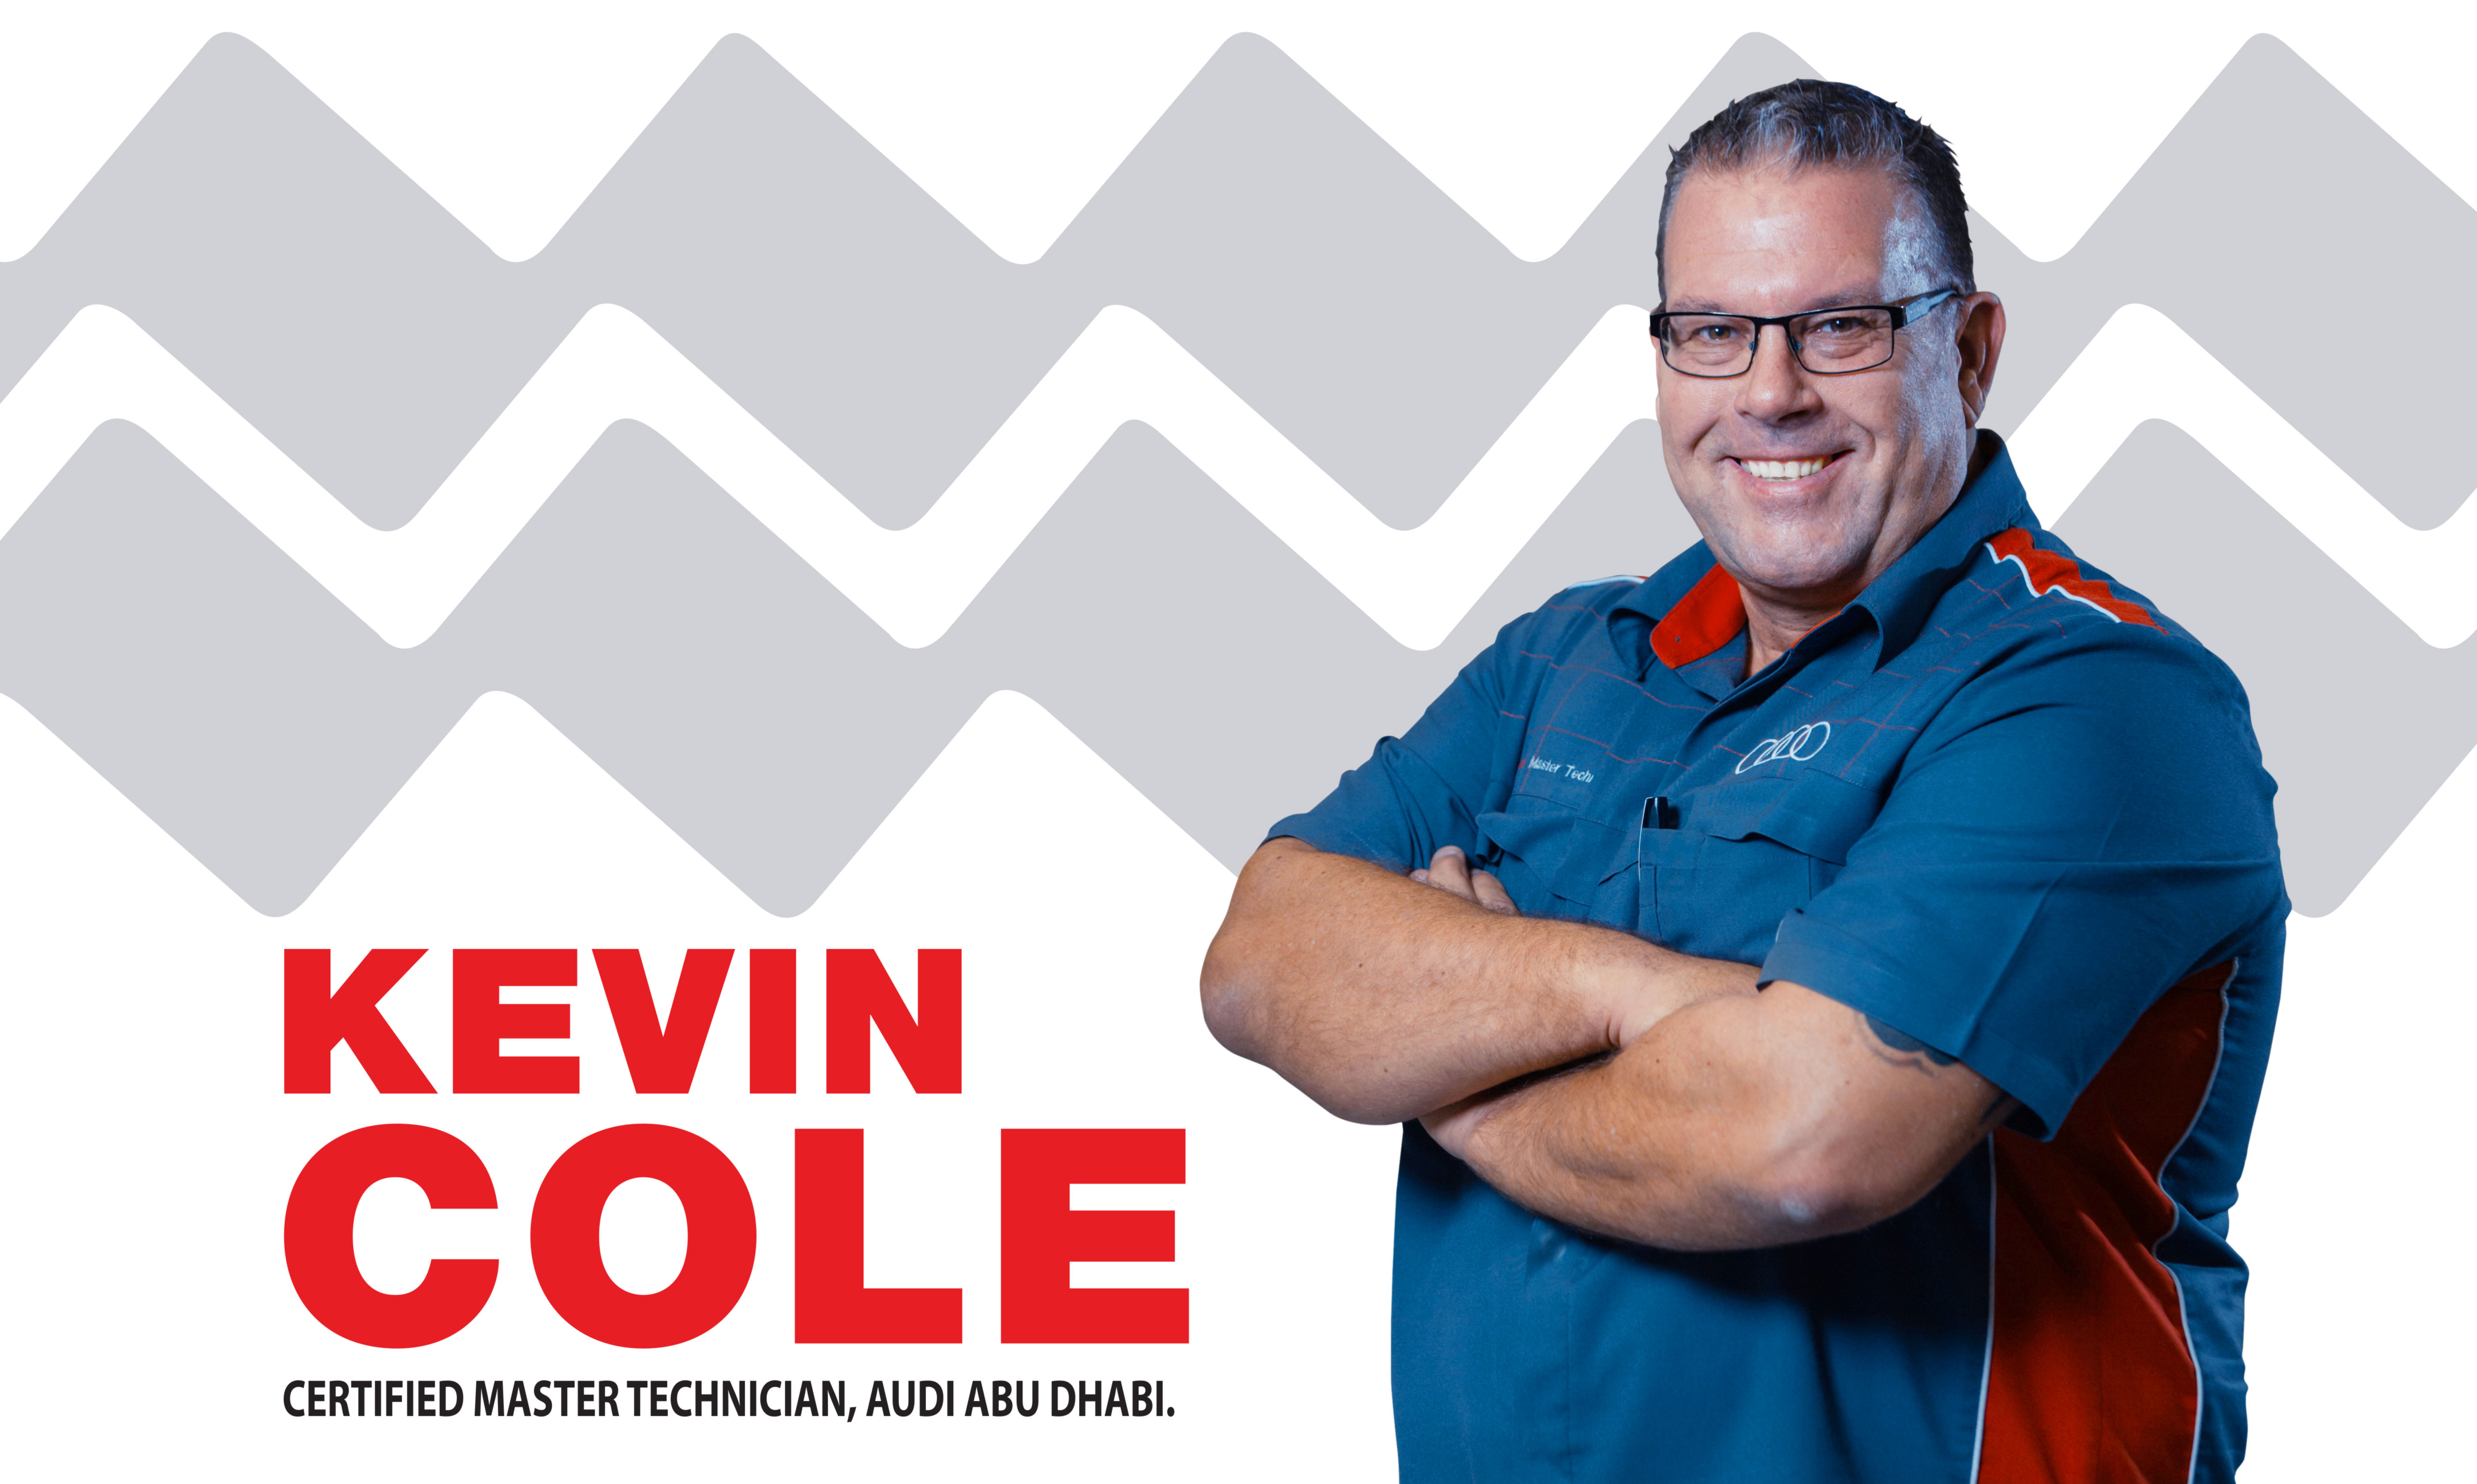 Interview with Kevin Cole – Certified Master Technician, Audi Abu Dhabi.